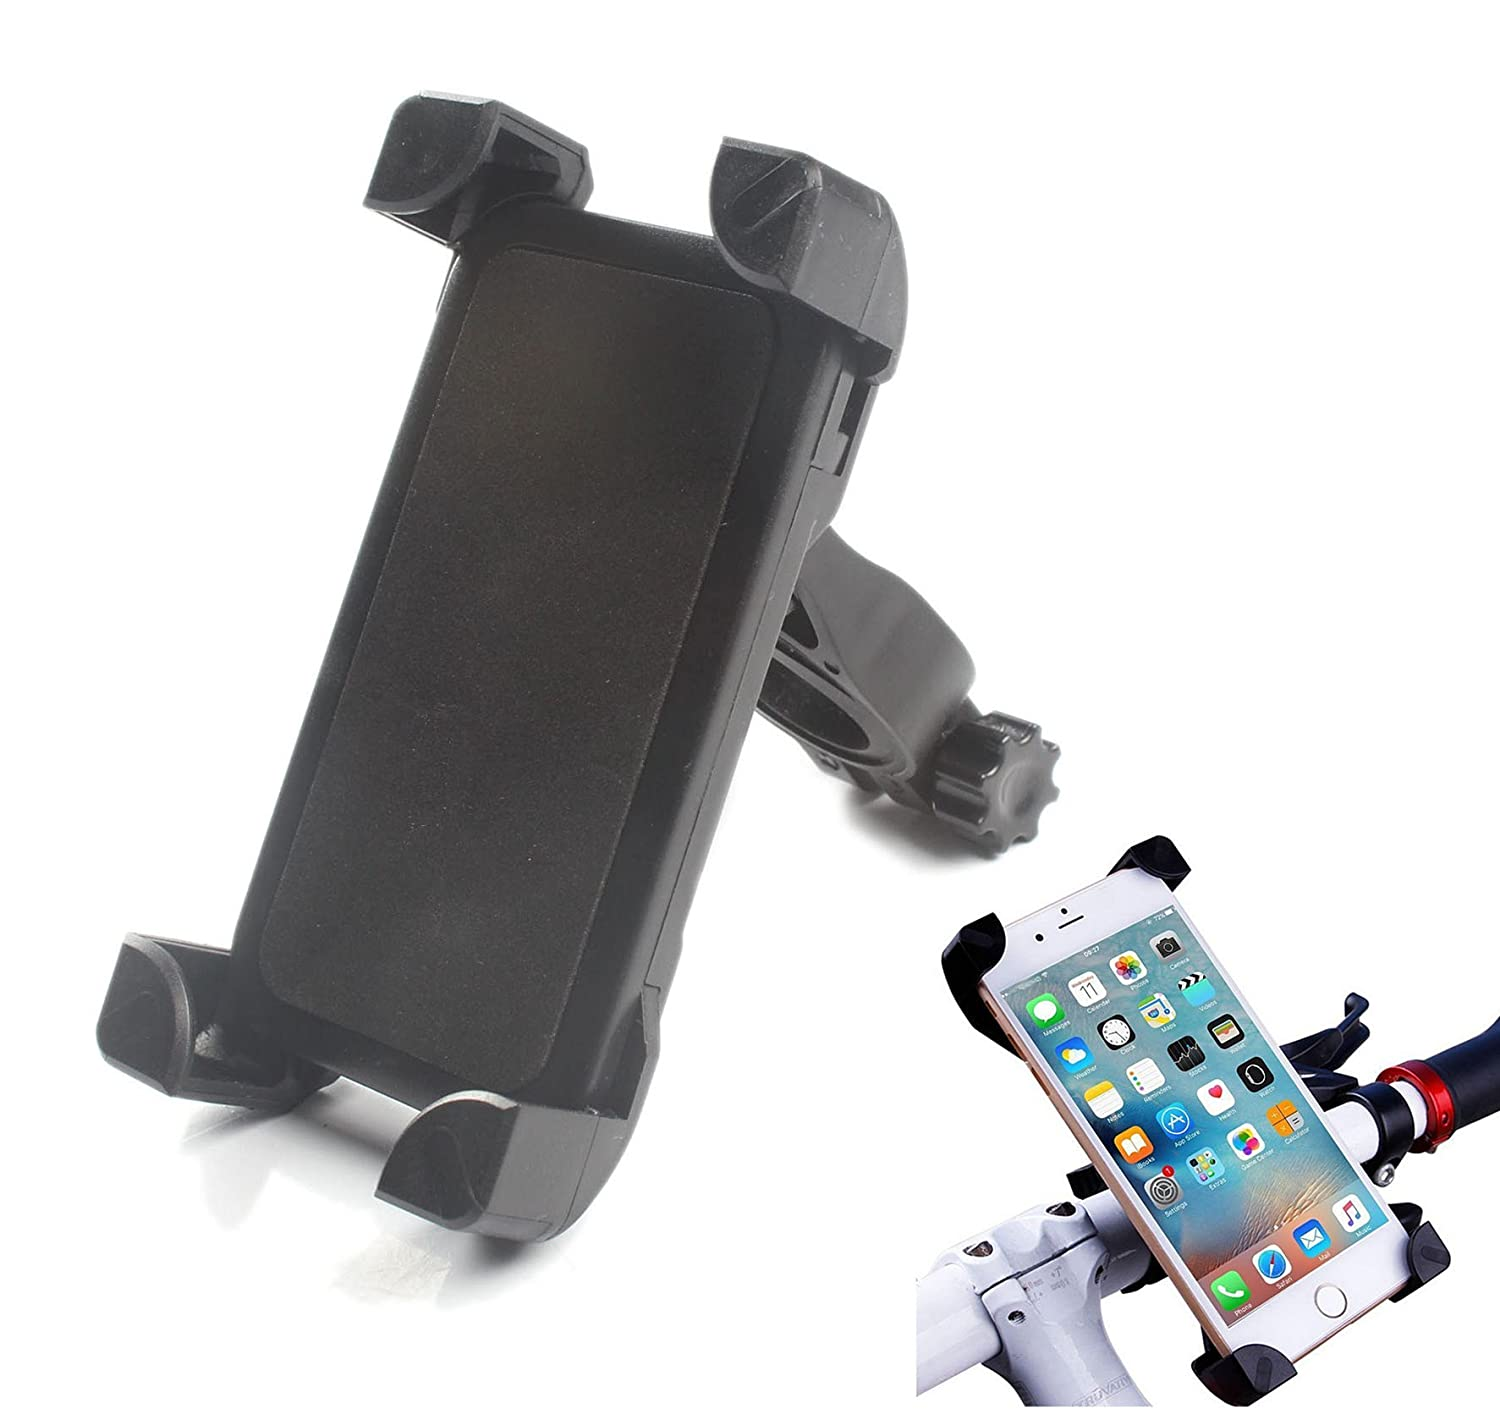 ANFTOP Mobile Phone Holder Bike Mount Cell Phone Holder Bicycle Handle Bars for iPhone Android Smartphone s6 Edge X 5 6 6s 7 8 s8 Plus and GPS Device Universal kit 4351520038